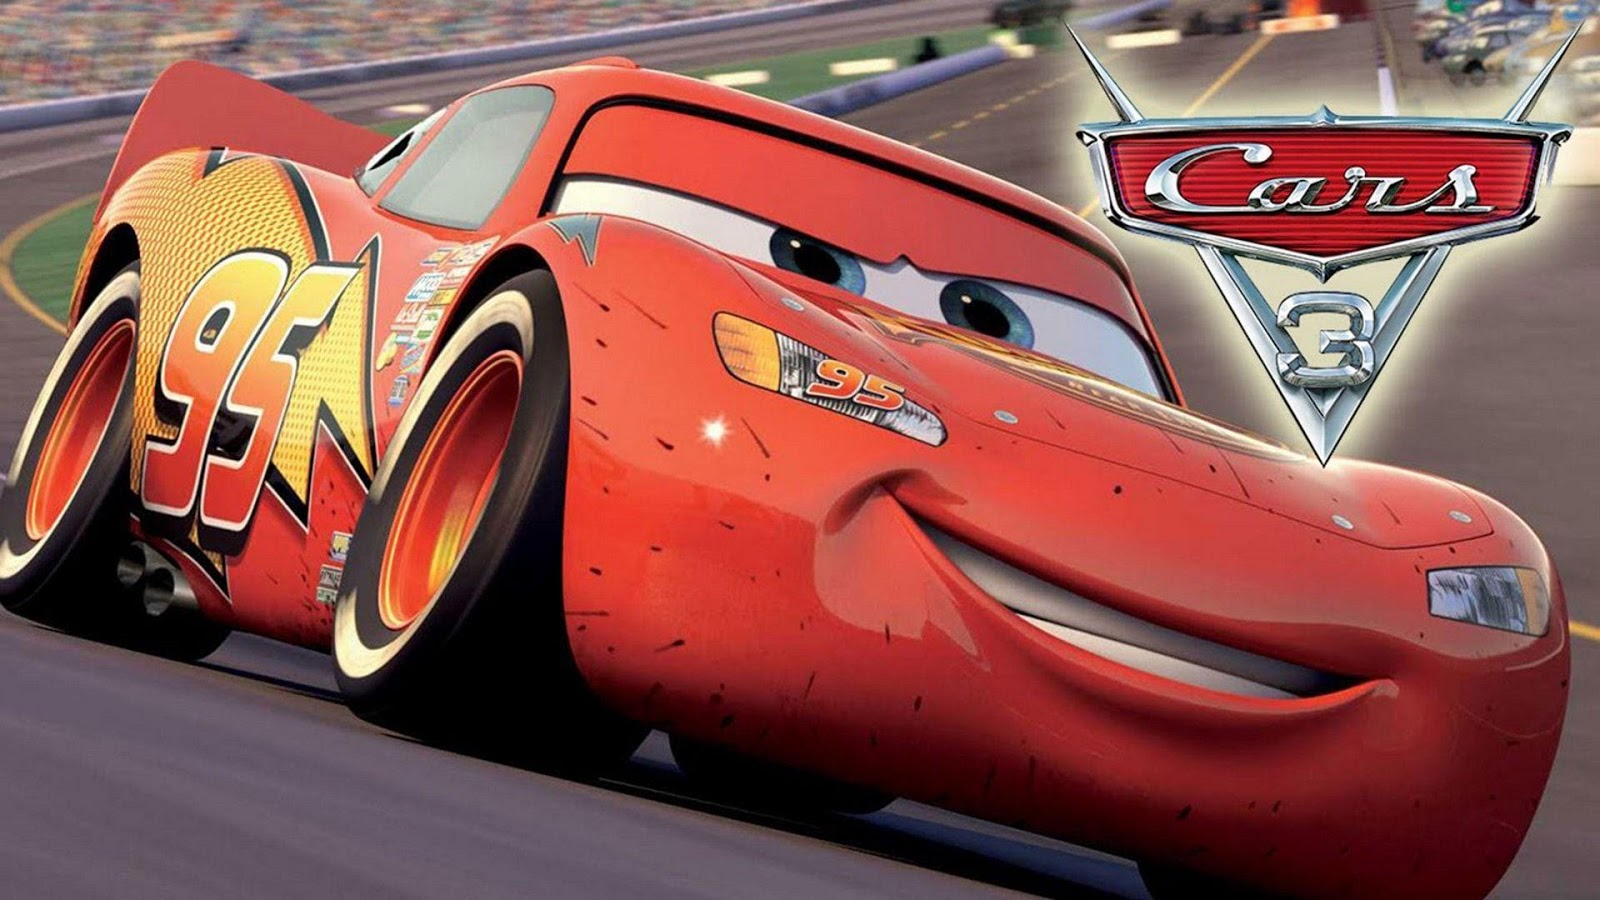 CARS 3 TAMIL DUBBED HD